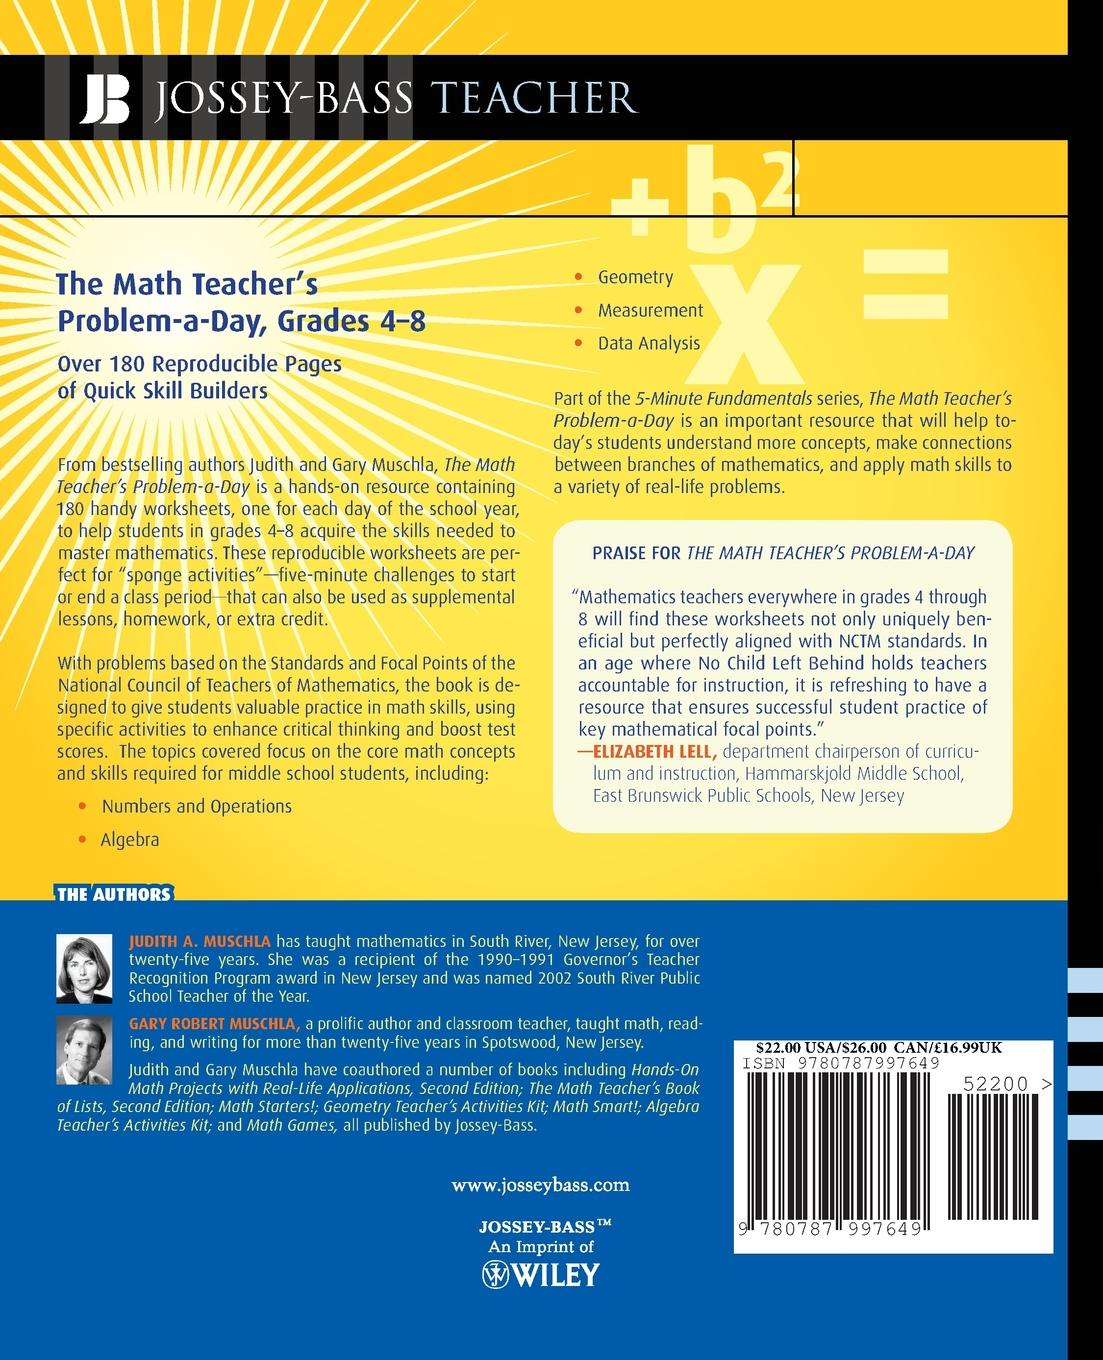 Judith A. Muschla, Gary Robert Muschla The Math Teacher's Problem-A-Day Grades 4-8. Over 180 Reproducible Pages of Quick Skill Builders erin muschla teaching the common core math standards with hands on activities grades 6 8